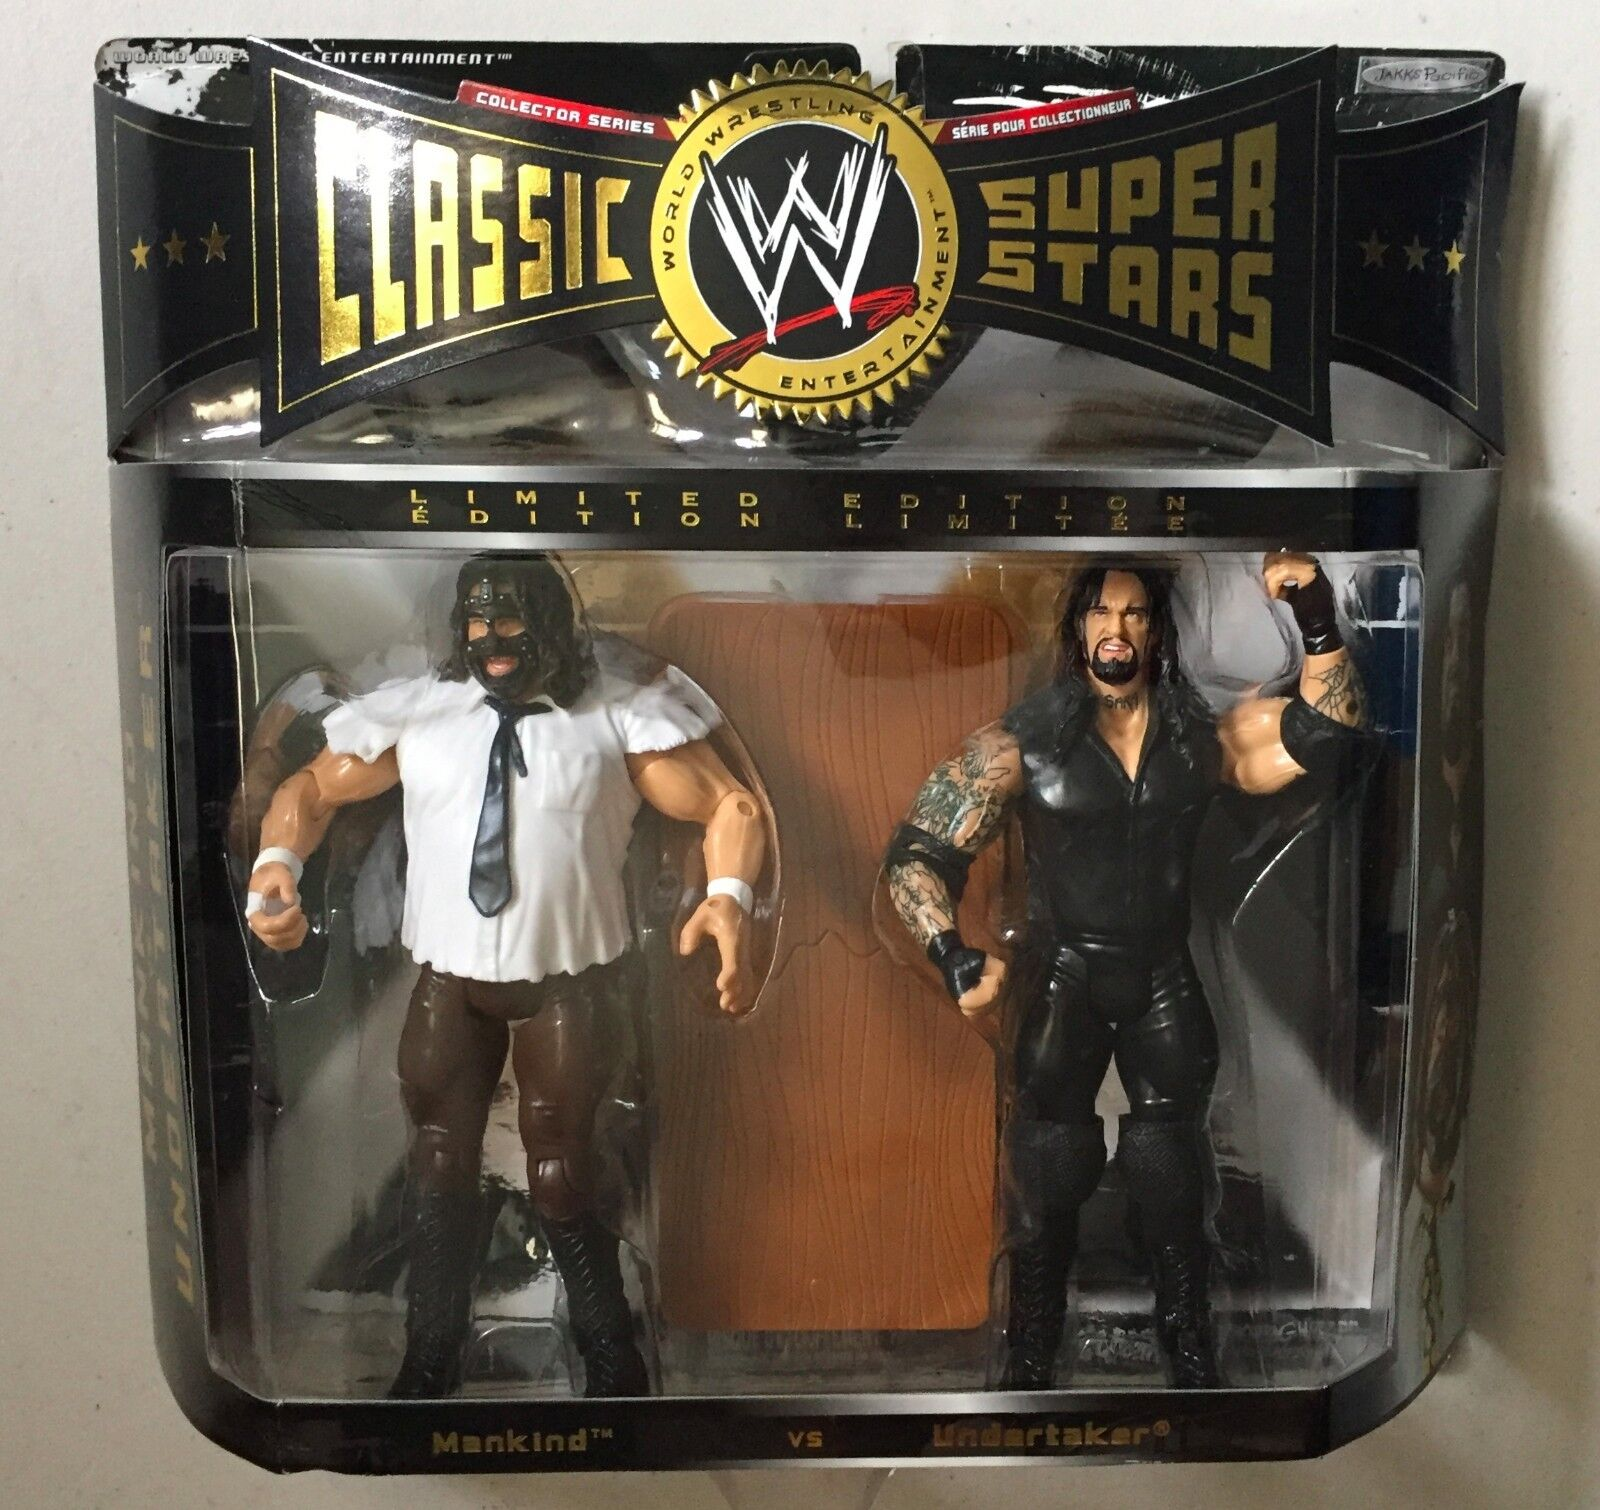 WWE Classic Superstars MANKIND vs UNDERTAKER Hell in Cell WWF Wrestling Figures